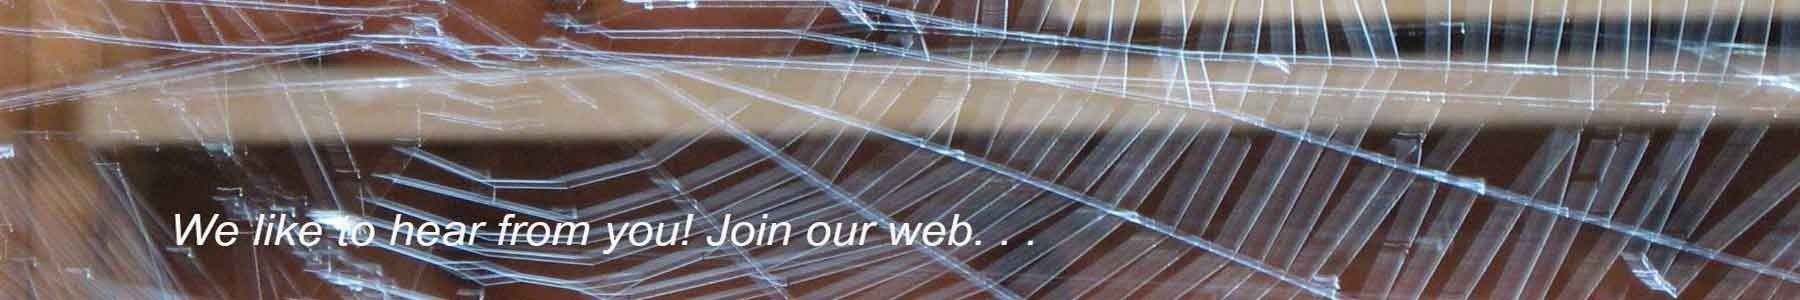 cropped-spider-web-contact-page-31.jpg